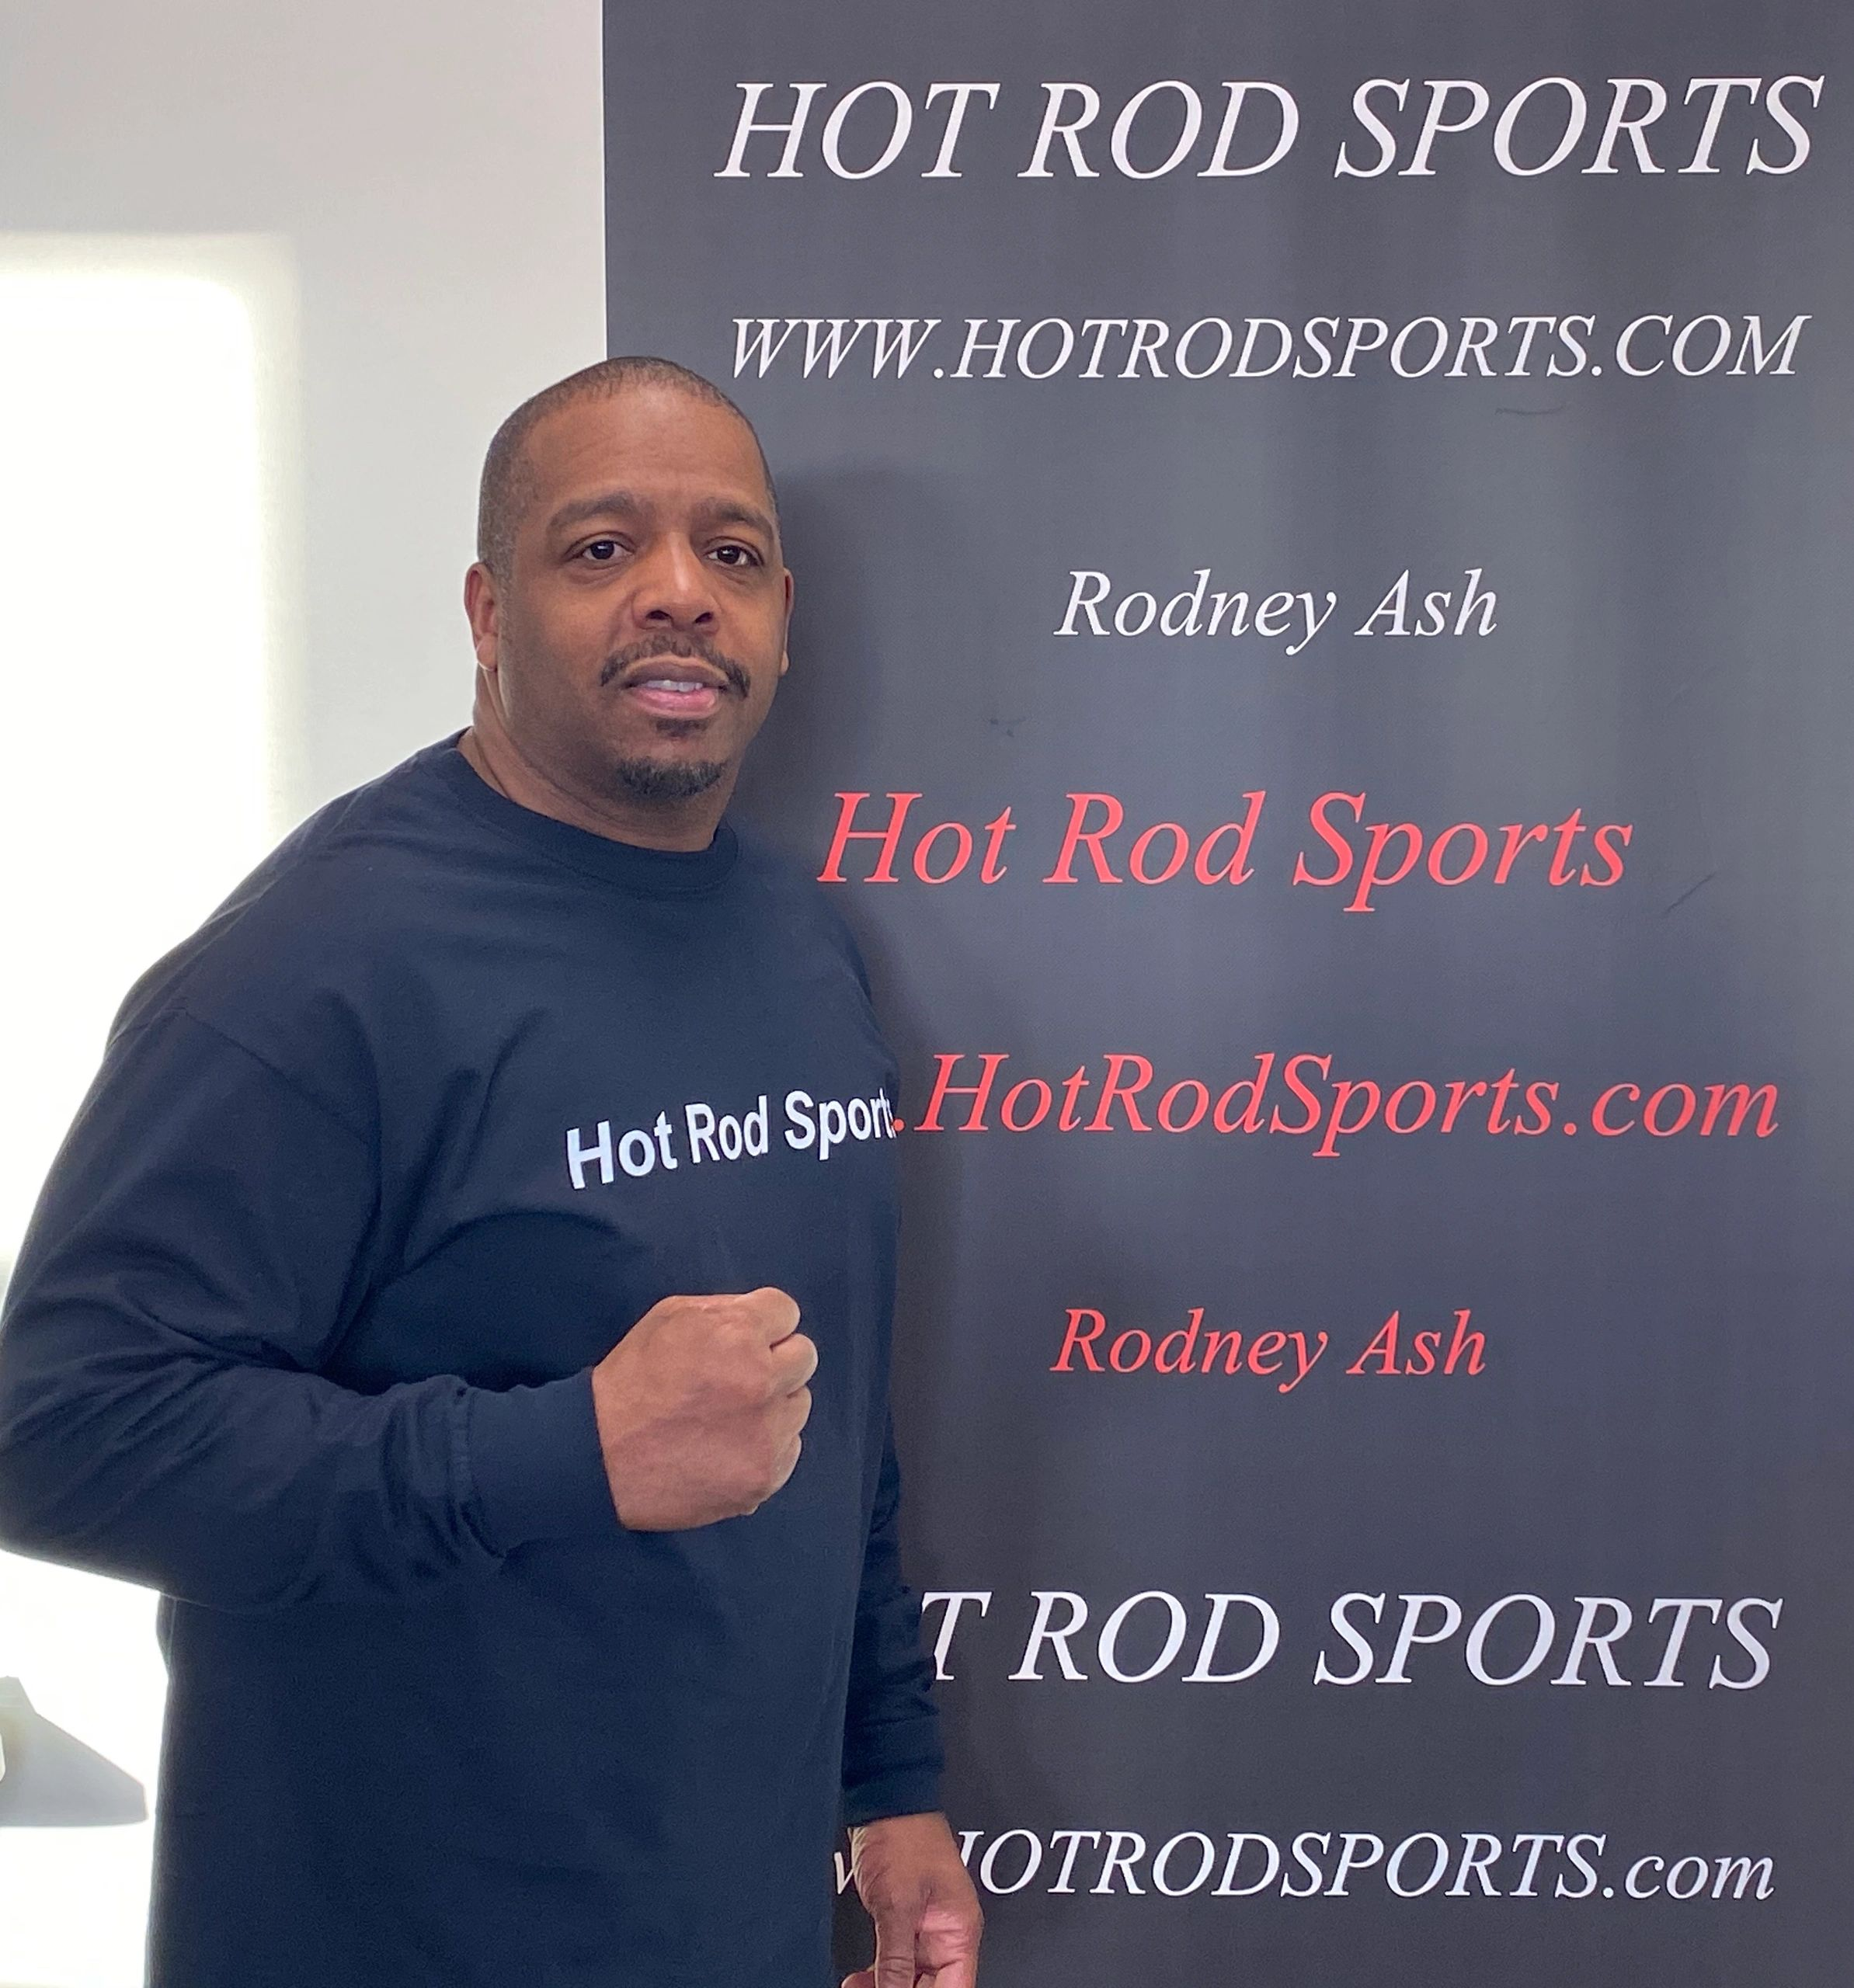 Rodney Ash is the founder and owner of Hot Rod Sports.  Sports media, management and consultation.